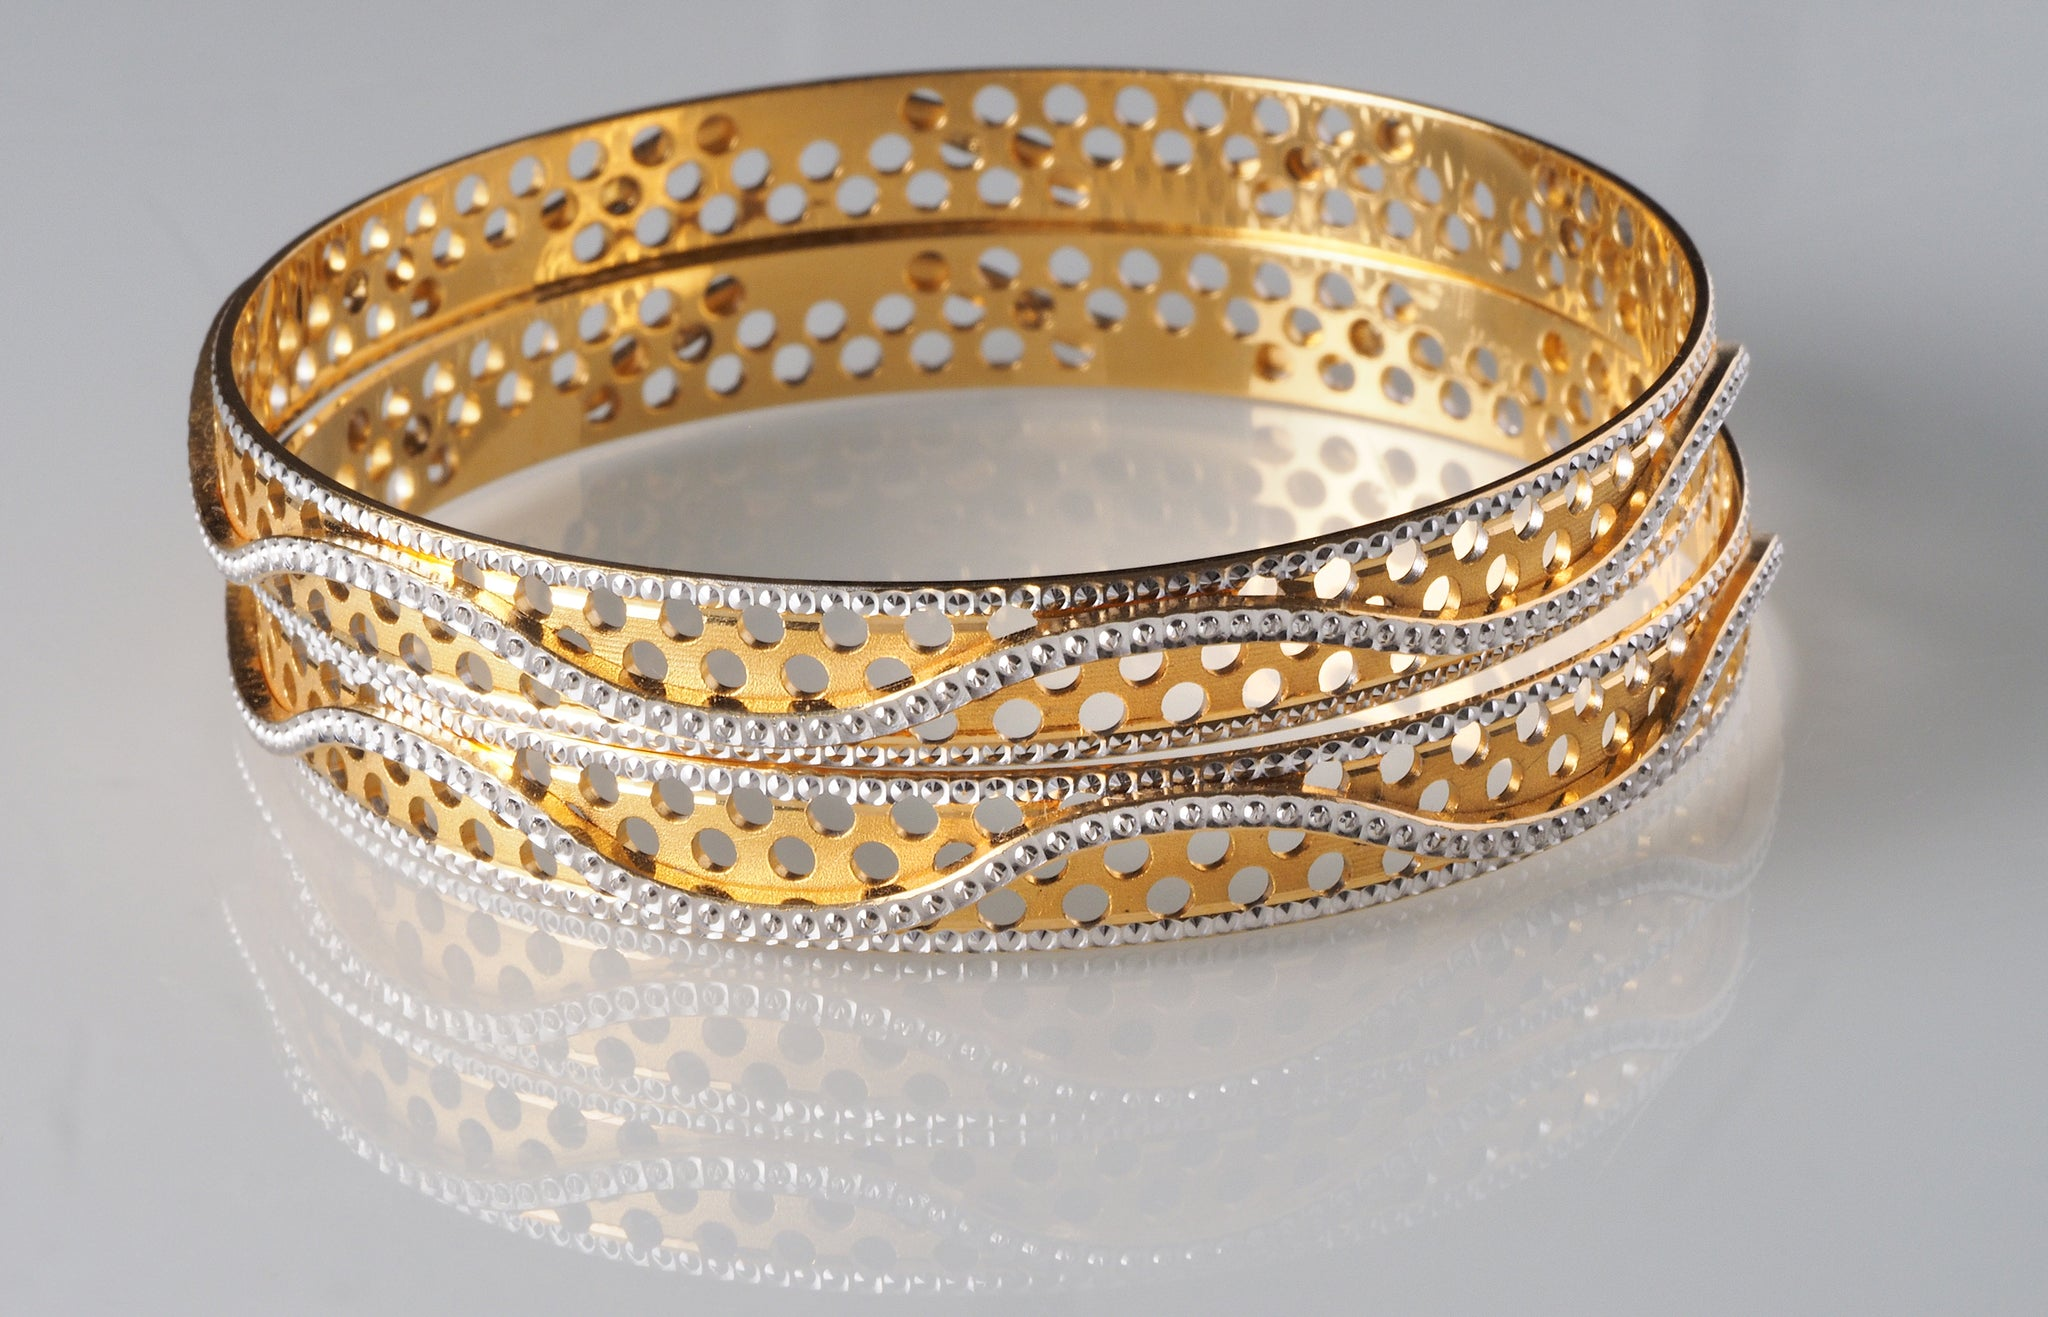 type velamart golden fps buy bracelet bangle our jewelry products traditional bangles other sakha design